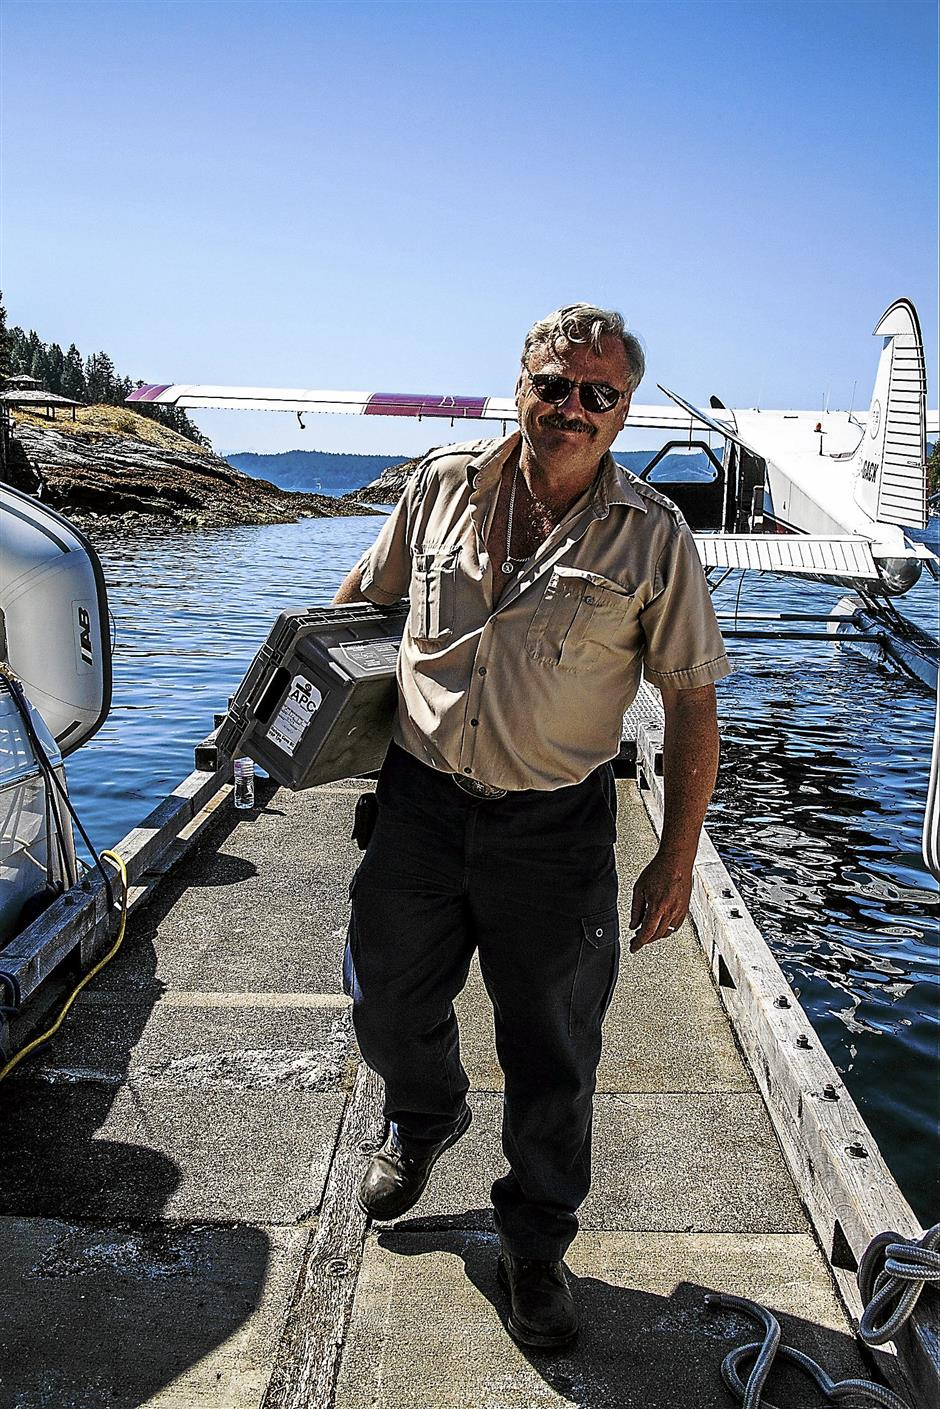 Pilot Mike Farrell lugging a box of mail at Refuge Cover, W. Redonda Isle. - Photo by Steve Haggerty/ColorWorld/MCT